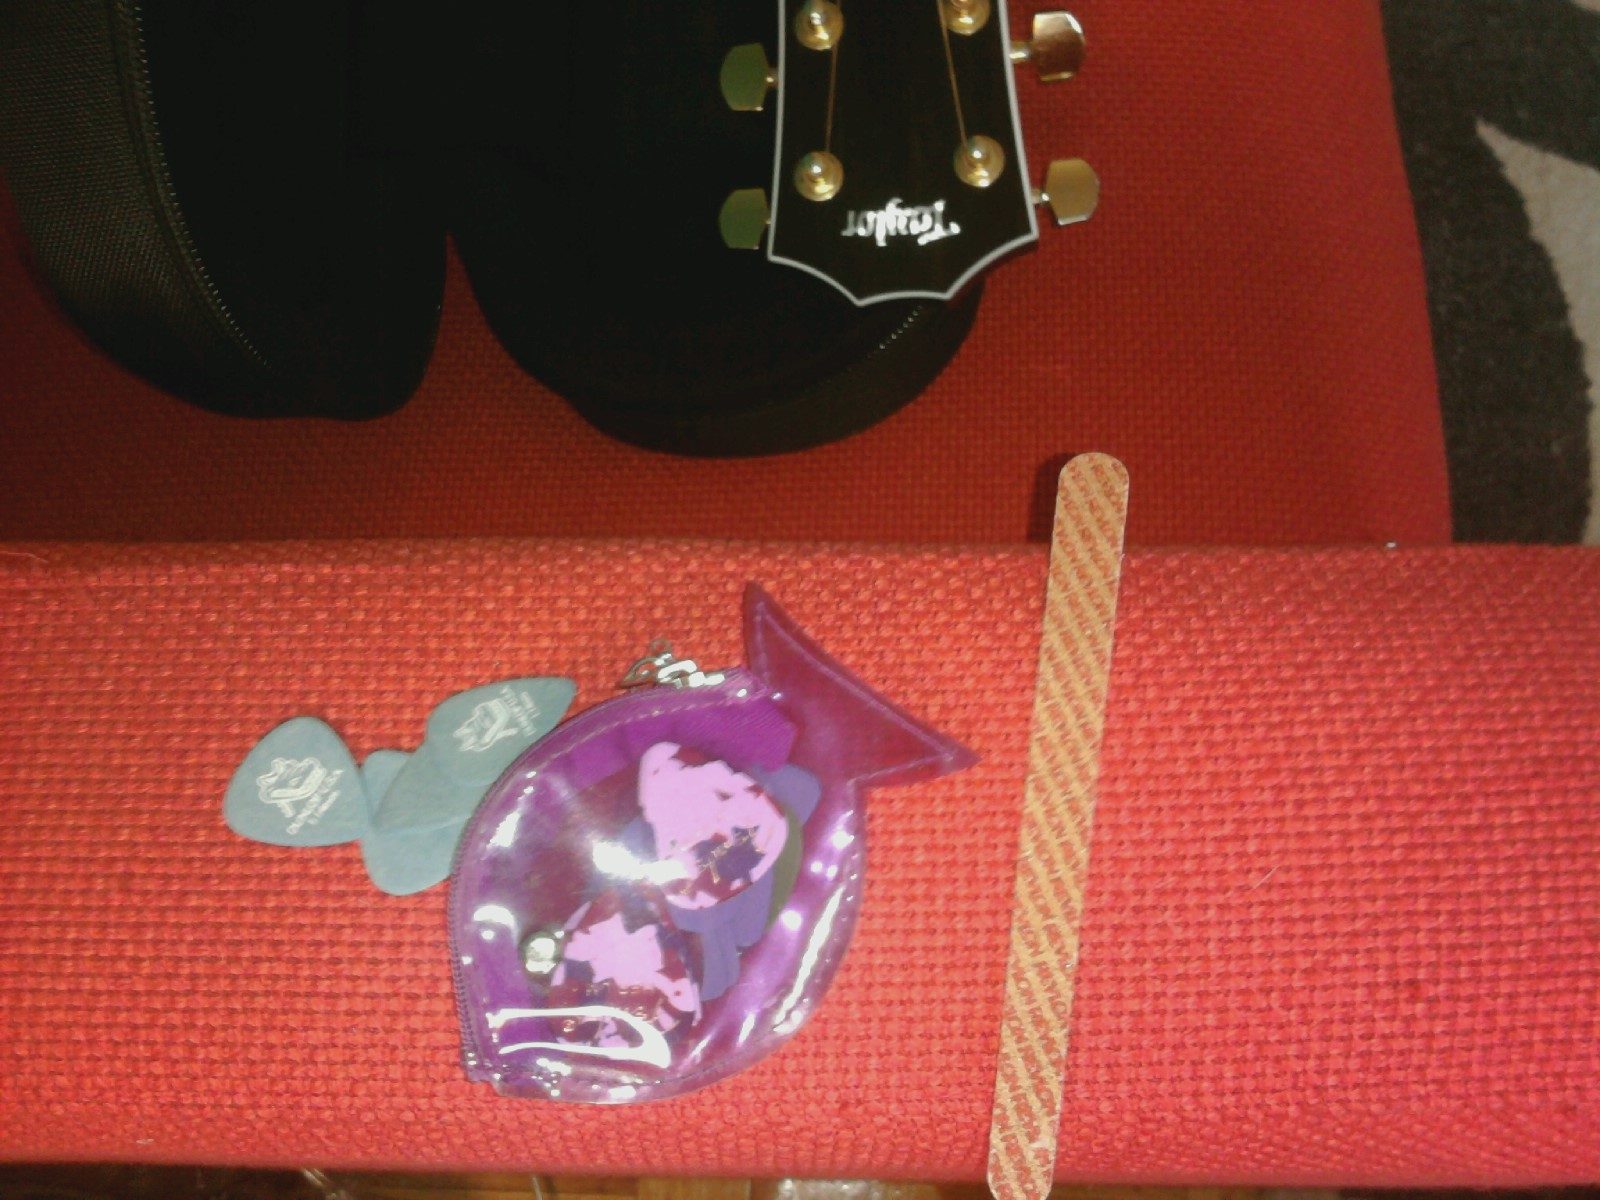 Picks and nail file